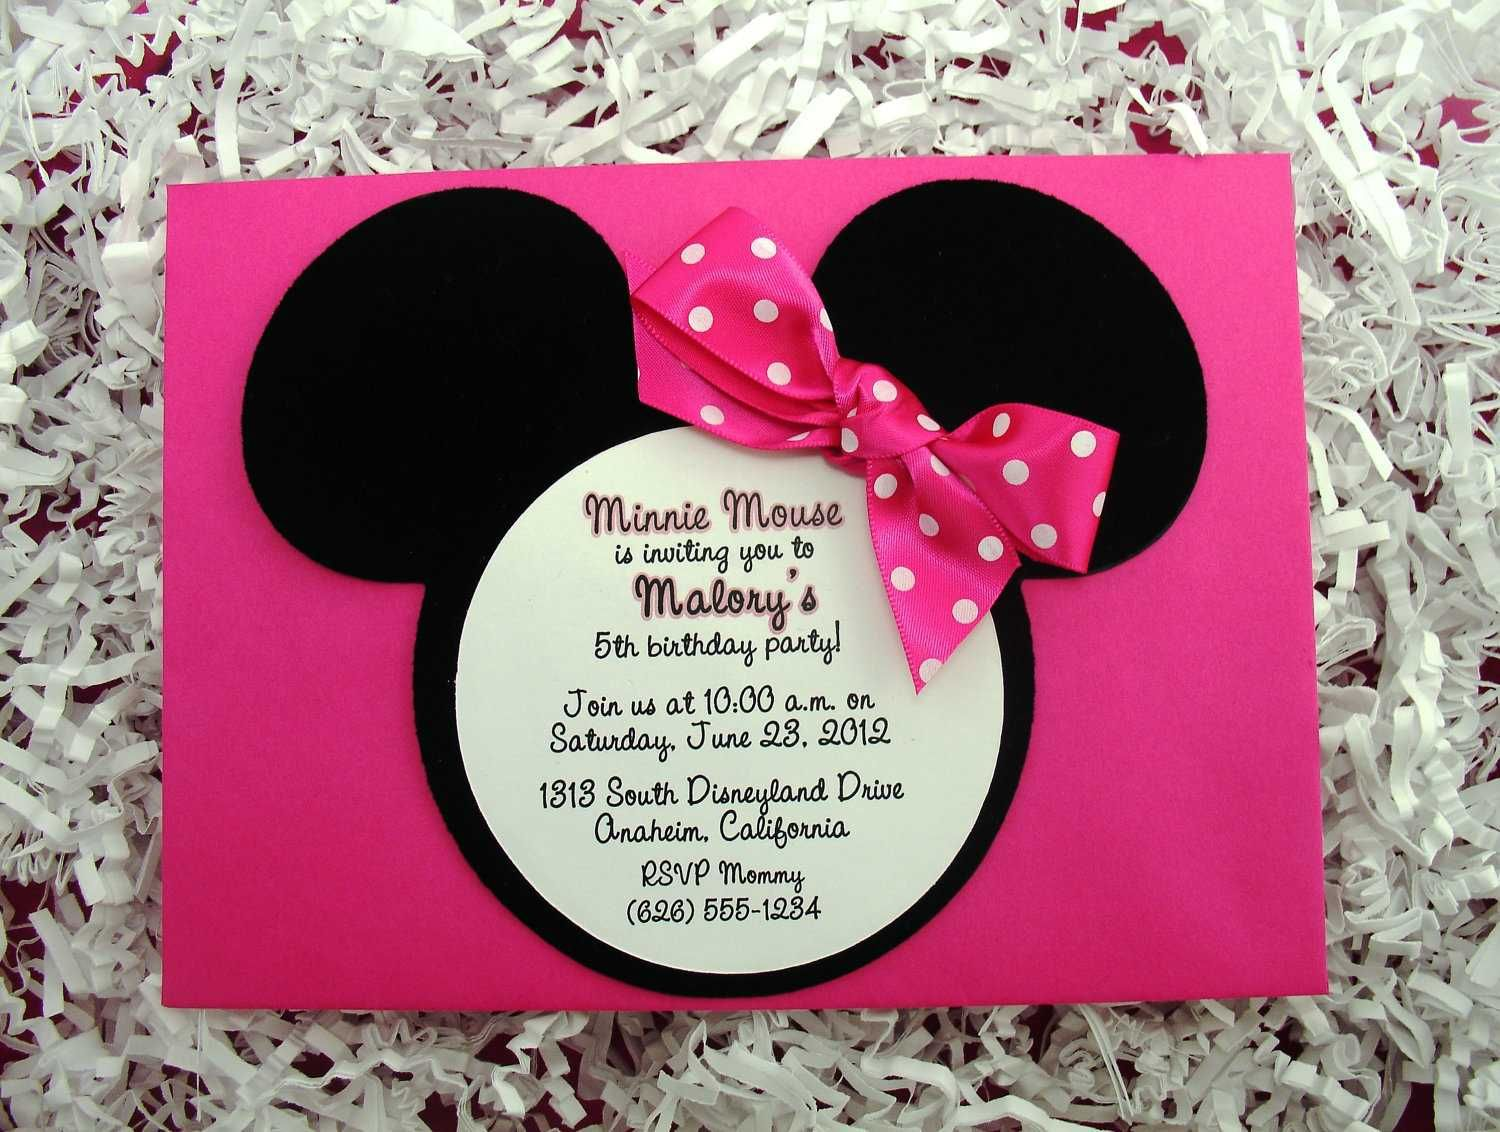 Very Cute Invitation Idea For A Little Girls Minne Themed - Minnie mouse birthday invitation message